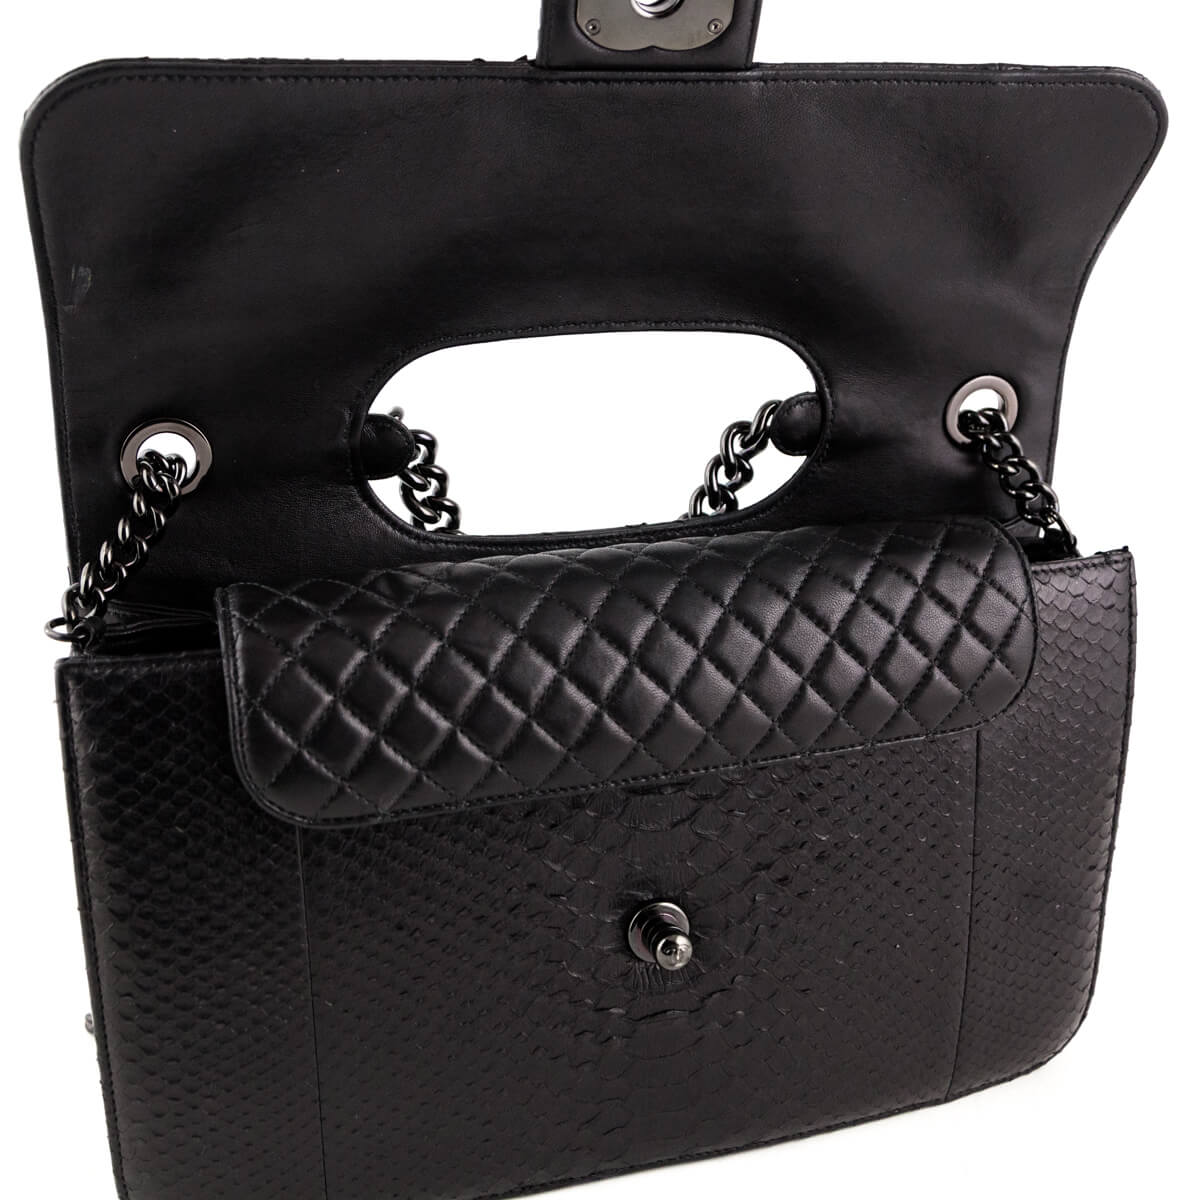 c11226dd8502 ... Chanel Black Python Perfect Edge Jumbo Flap Bag - LOVE that BAG -  Preowned Authentic Designer ...